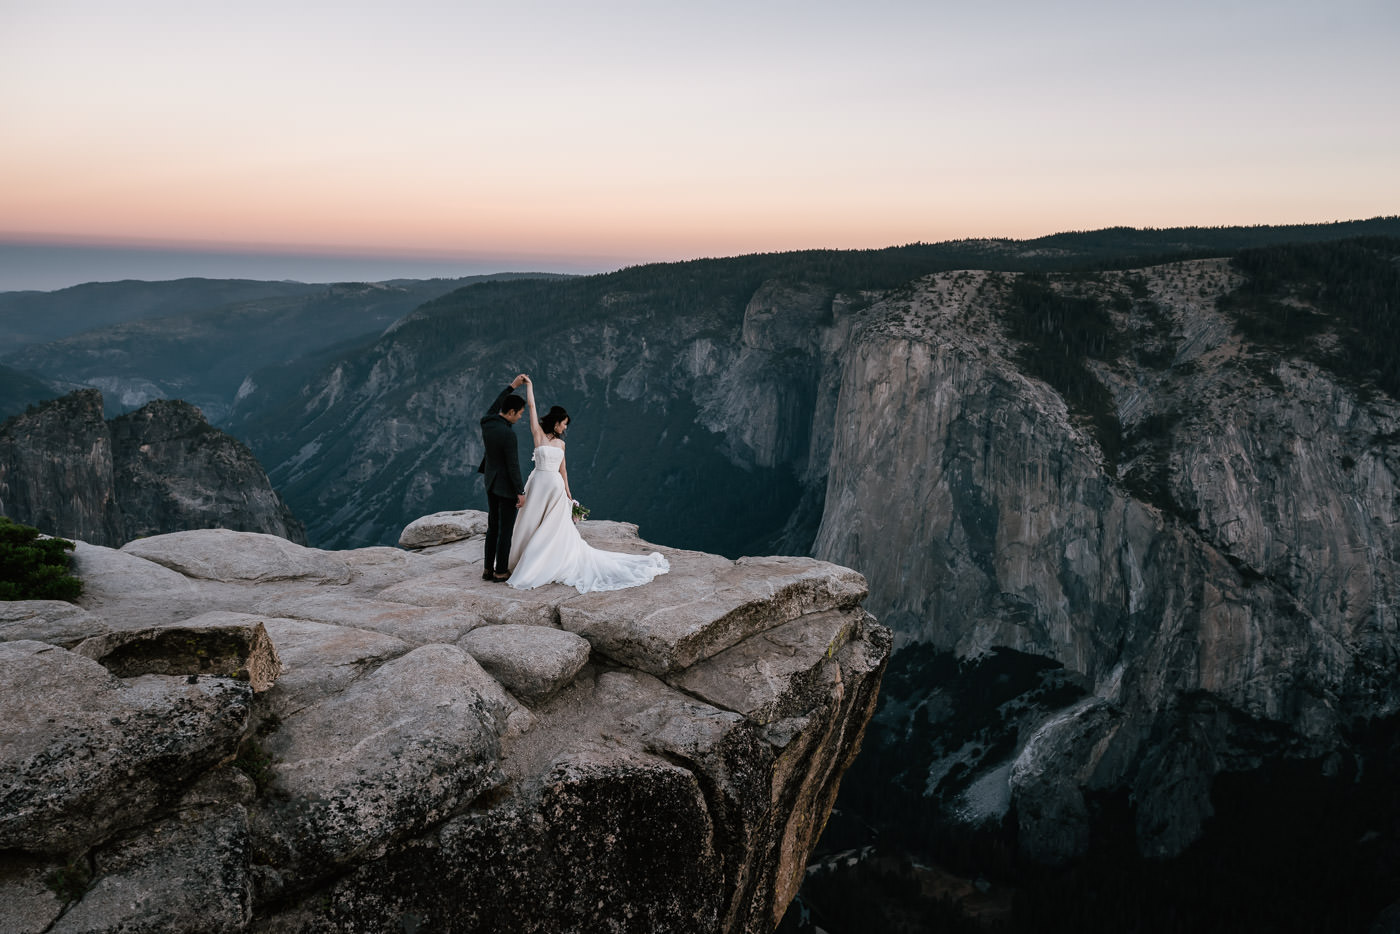 Best adventure photographer for national park weddings.